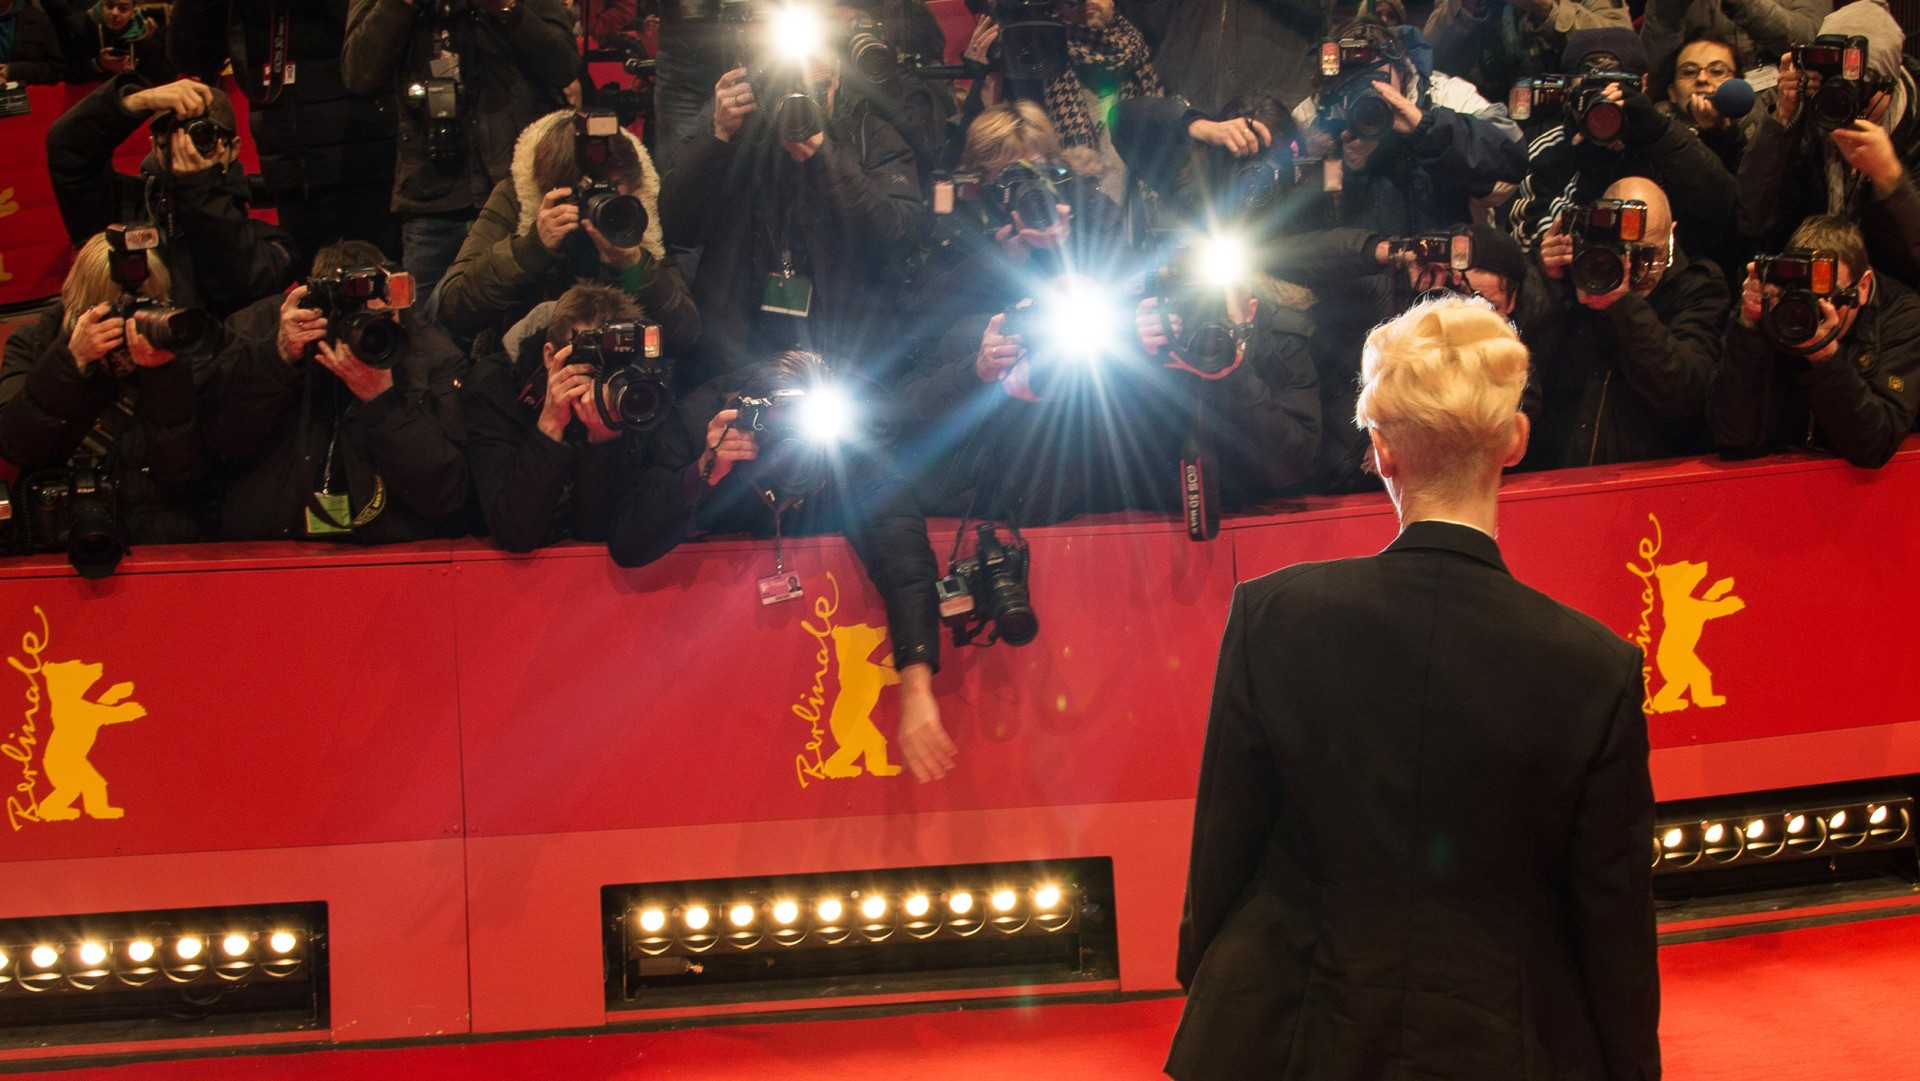 Image: 'The Grand Budapest Hotel' Premiere - 64th Berlinale International Film Festival